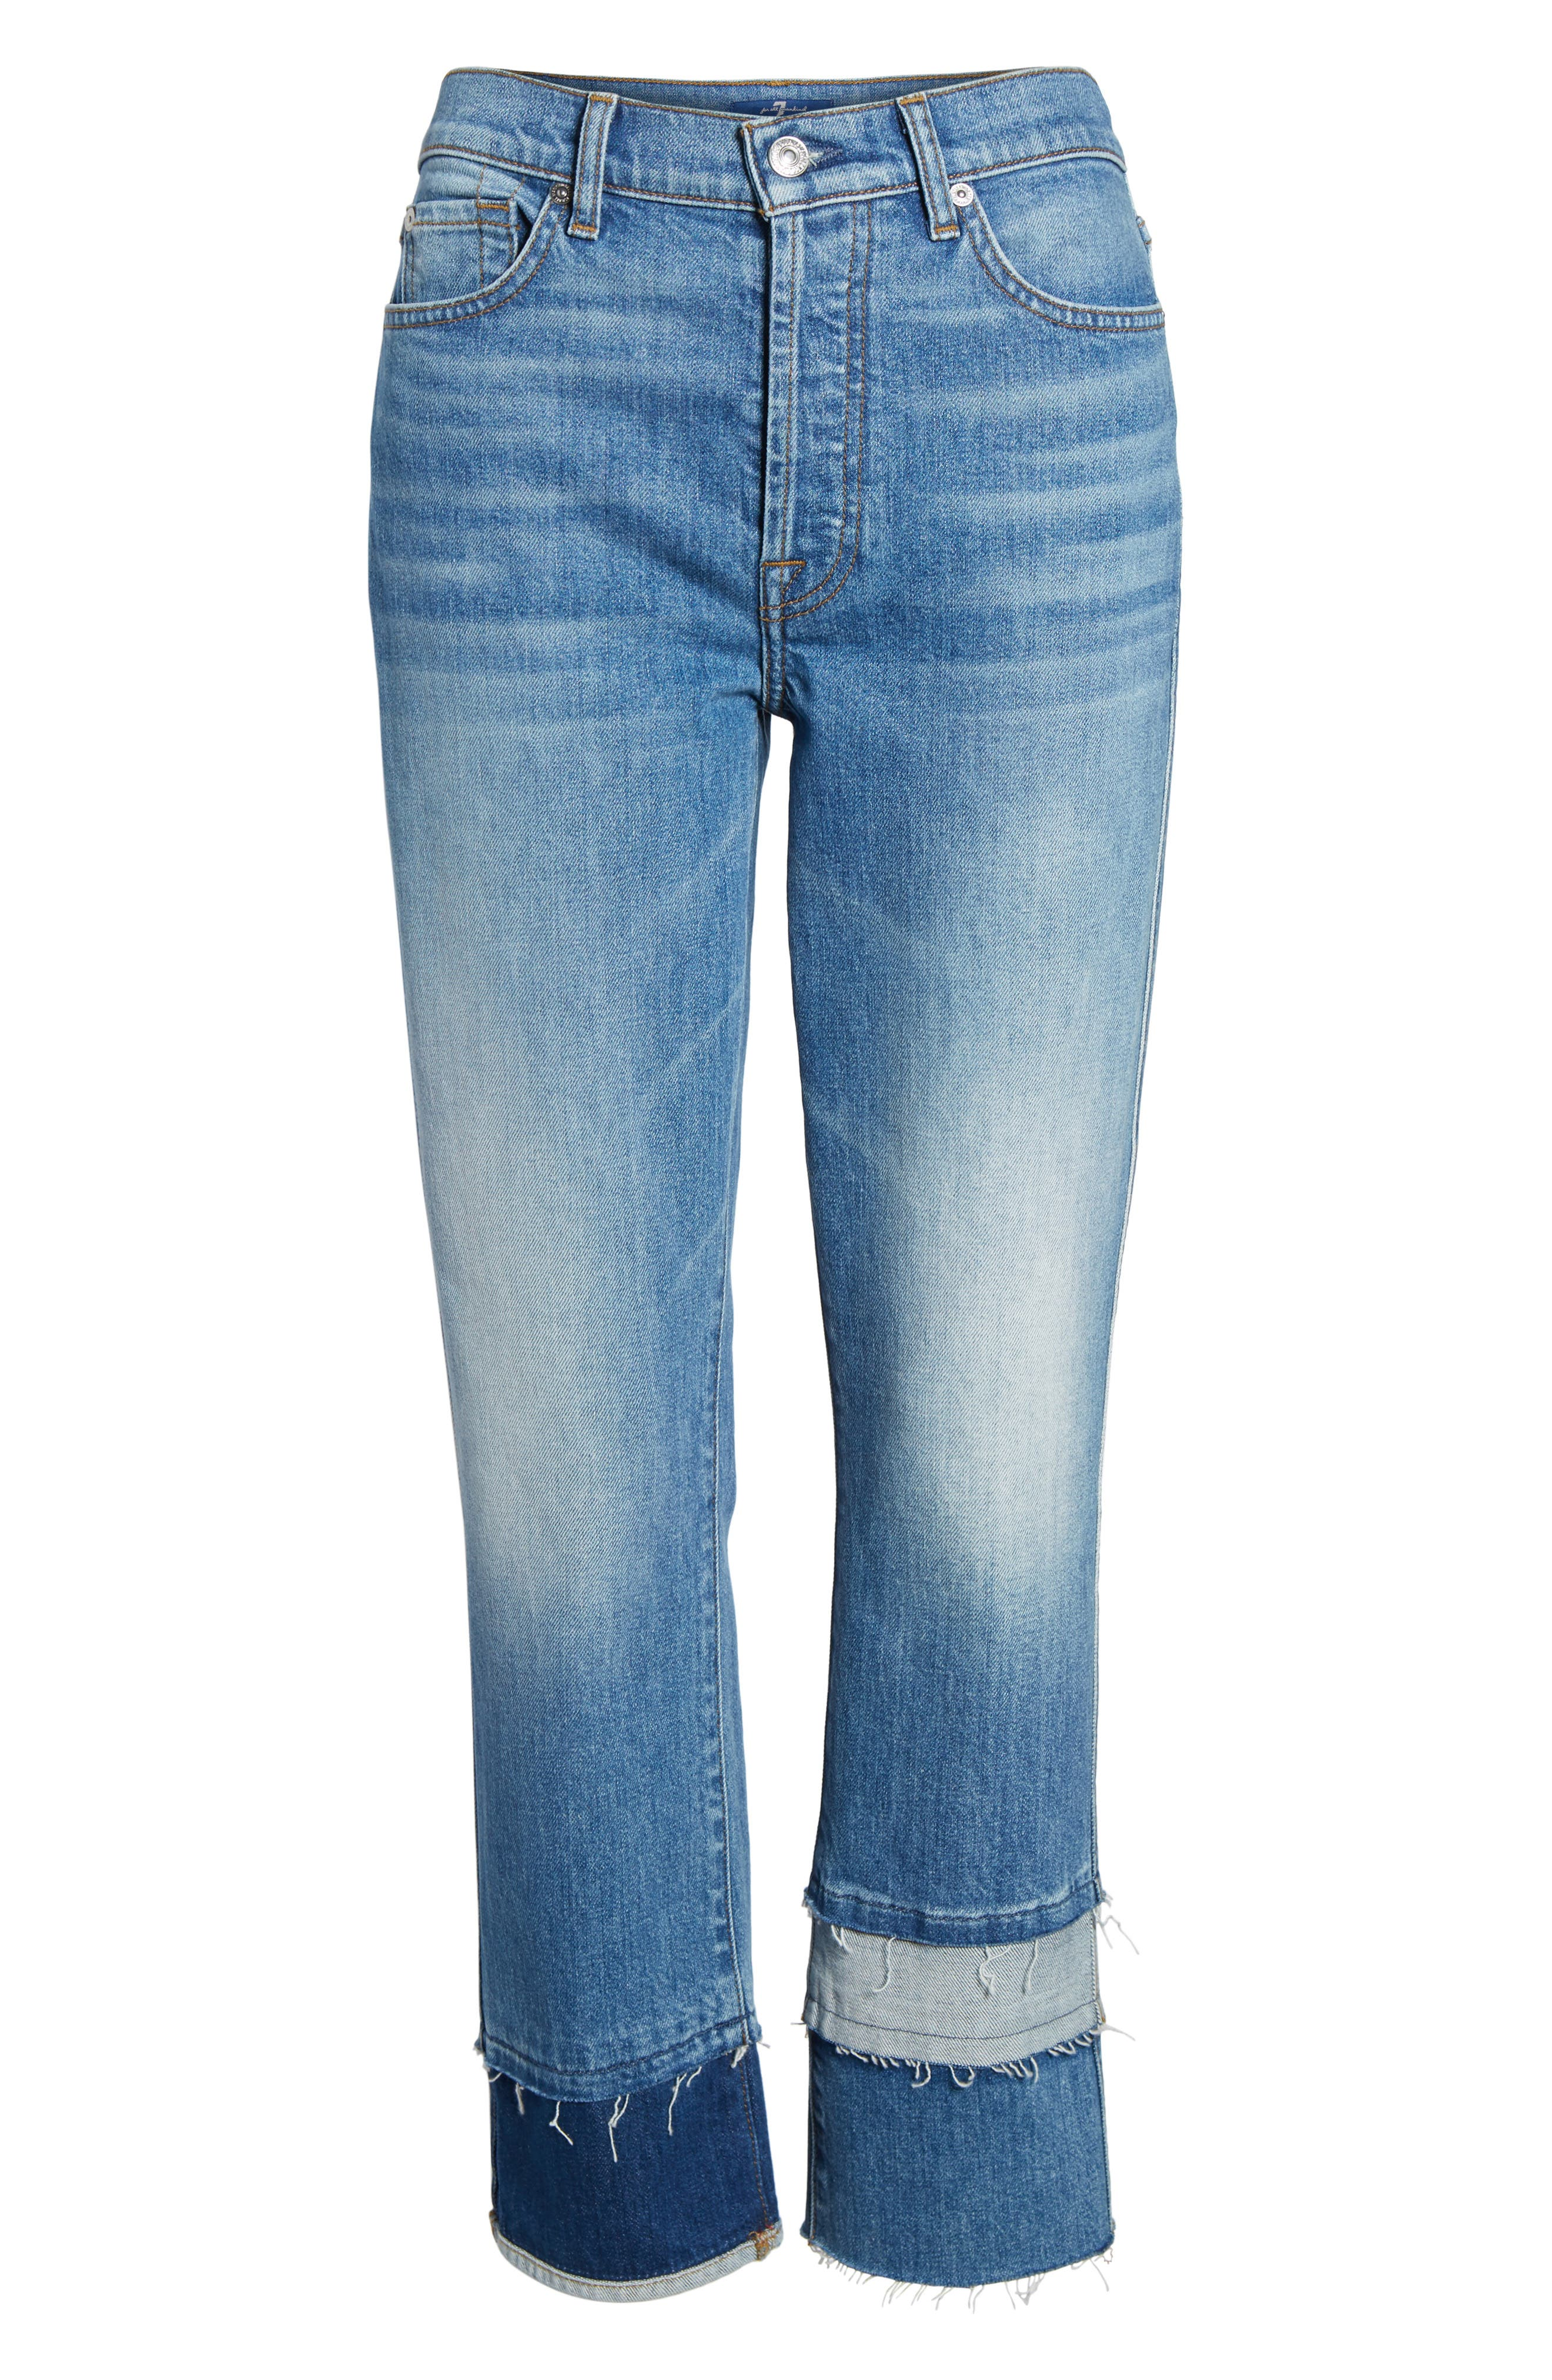 Edie Pieced Hem Cropped Jeans,                             Alternate thumbnail 7, color,                             401